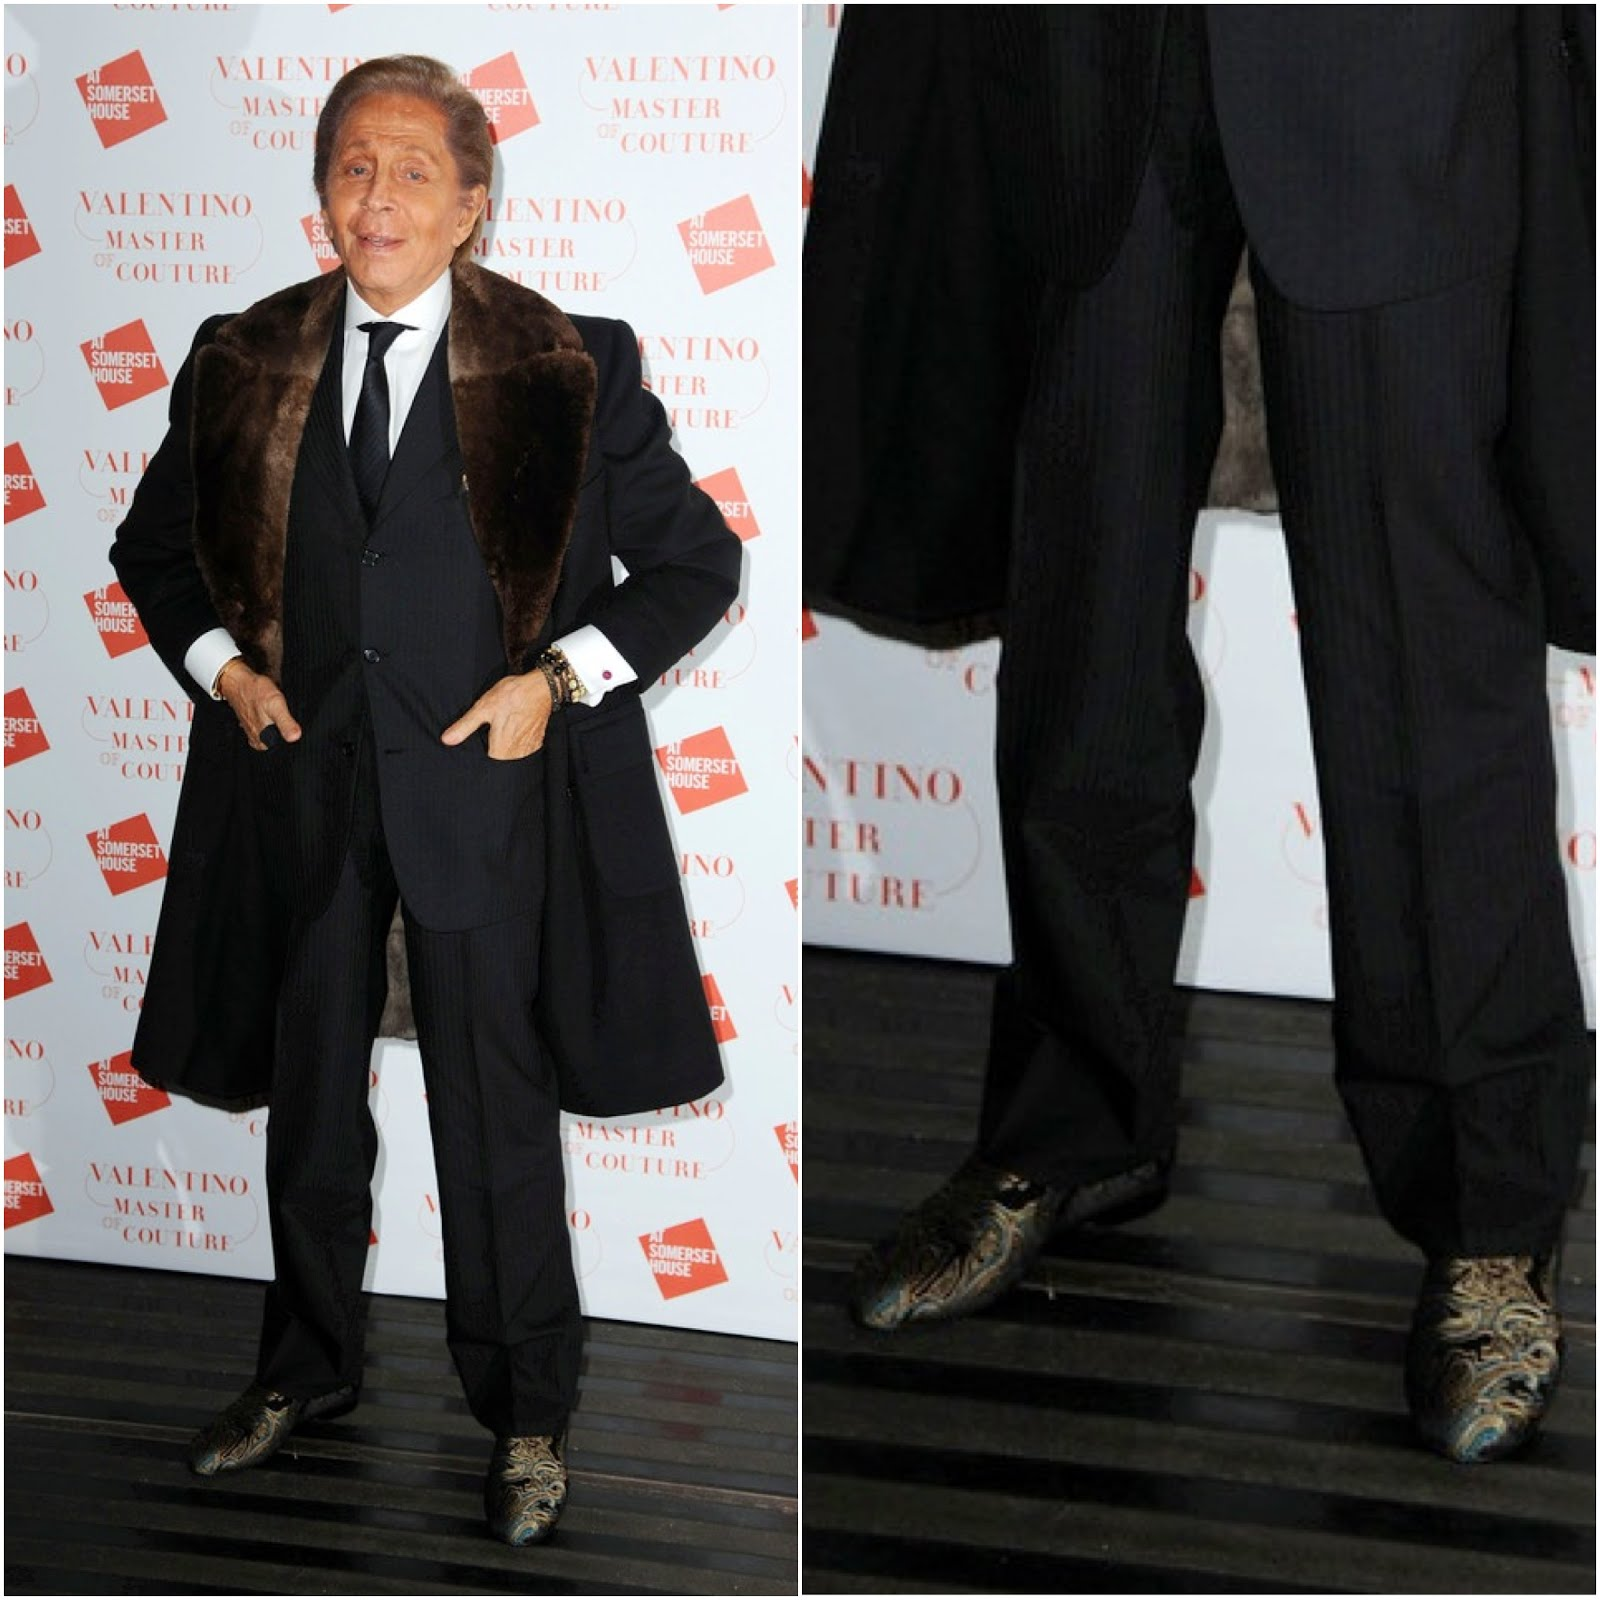 00O00 London Menswear Blog Celebrity Style Valentino Garavani's Jimmy Choo slippers at the VIP view of Valentino: Master of Couture